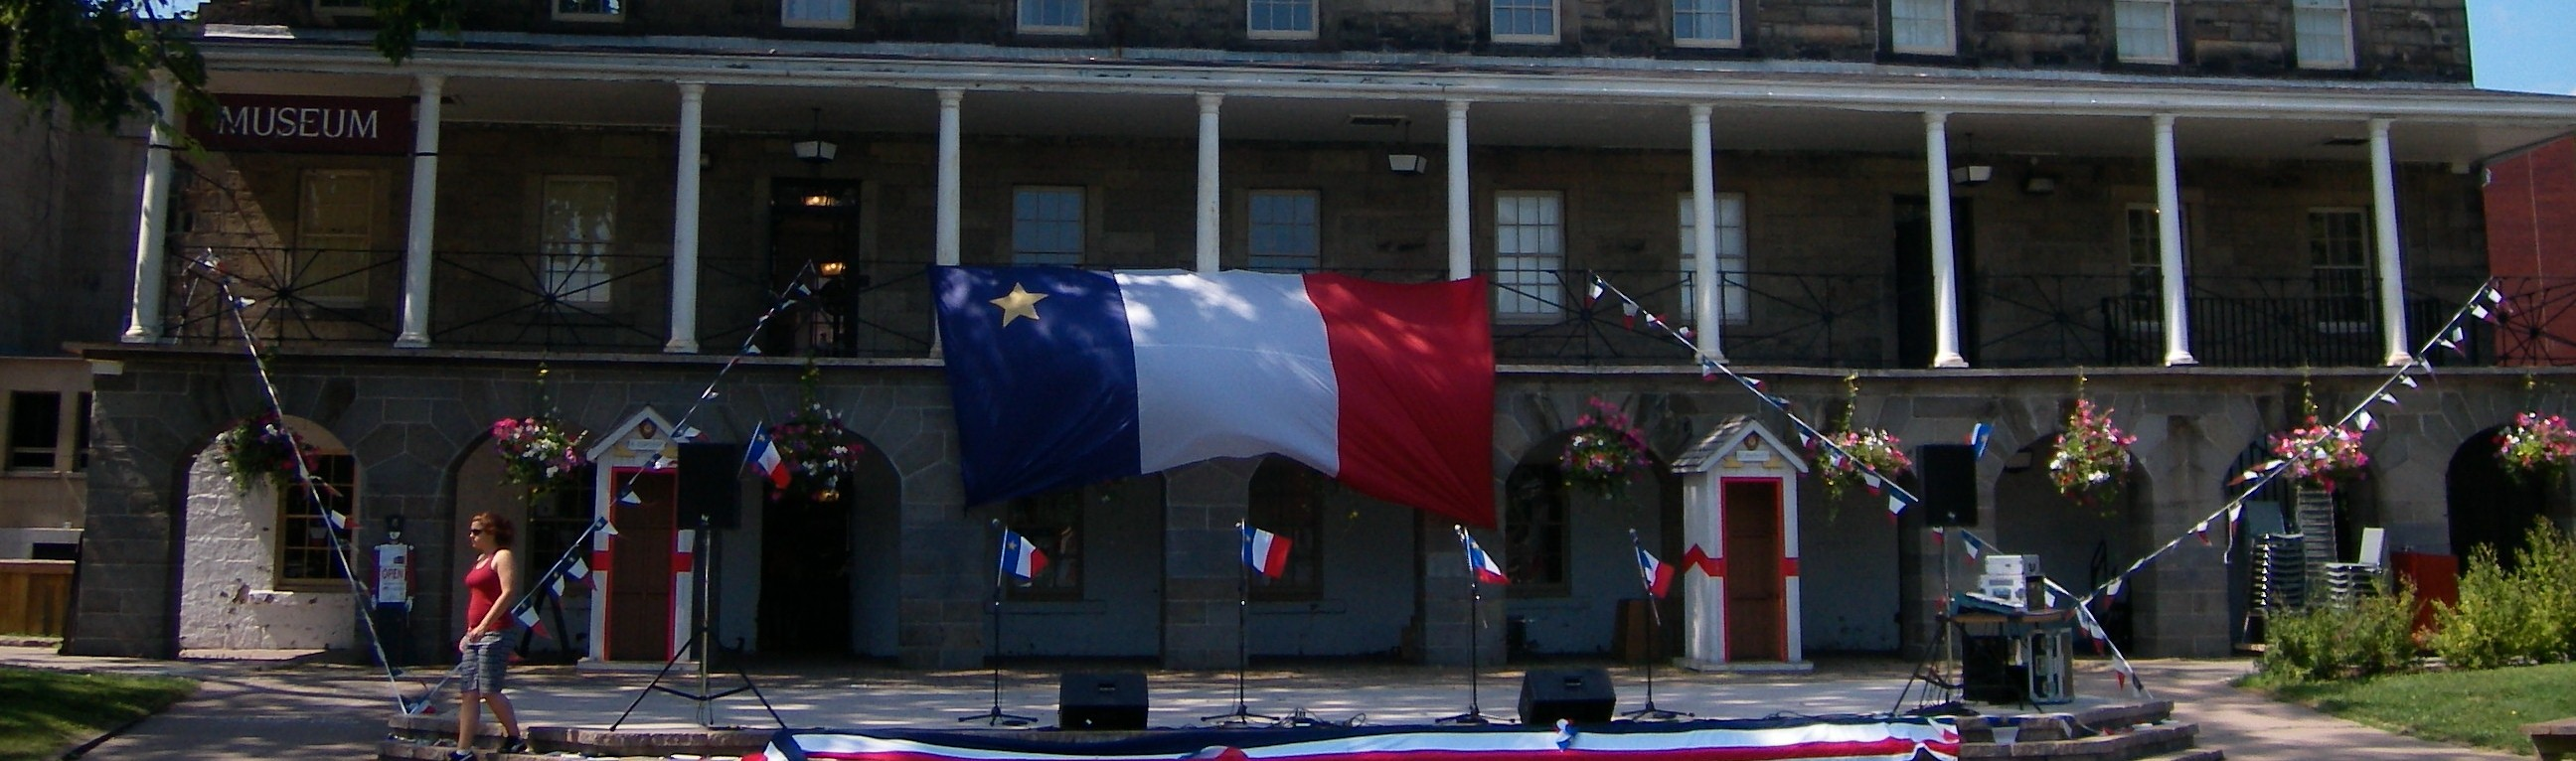 Fredericton Region Museum during Acadian Day Celebrations (August 2009)